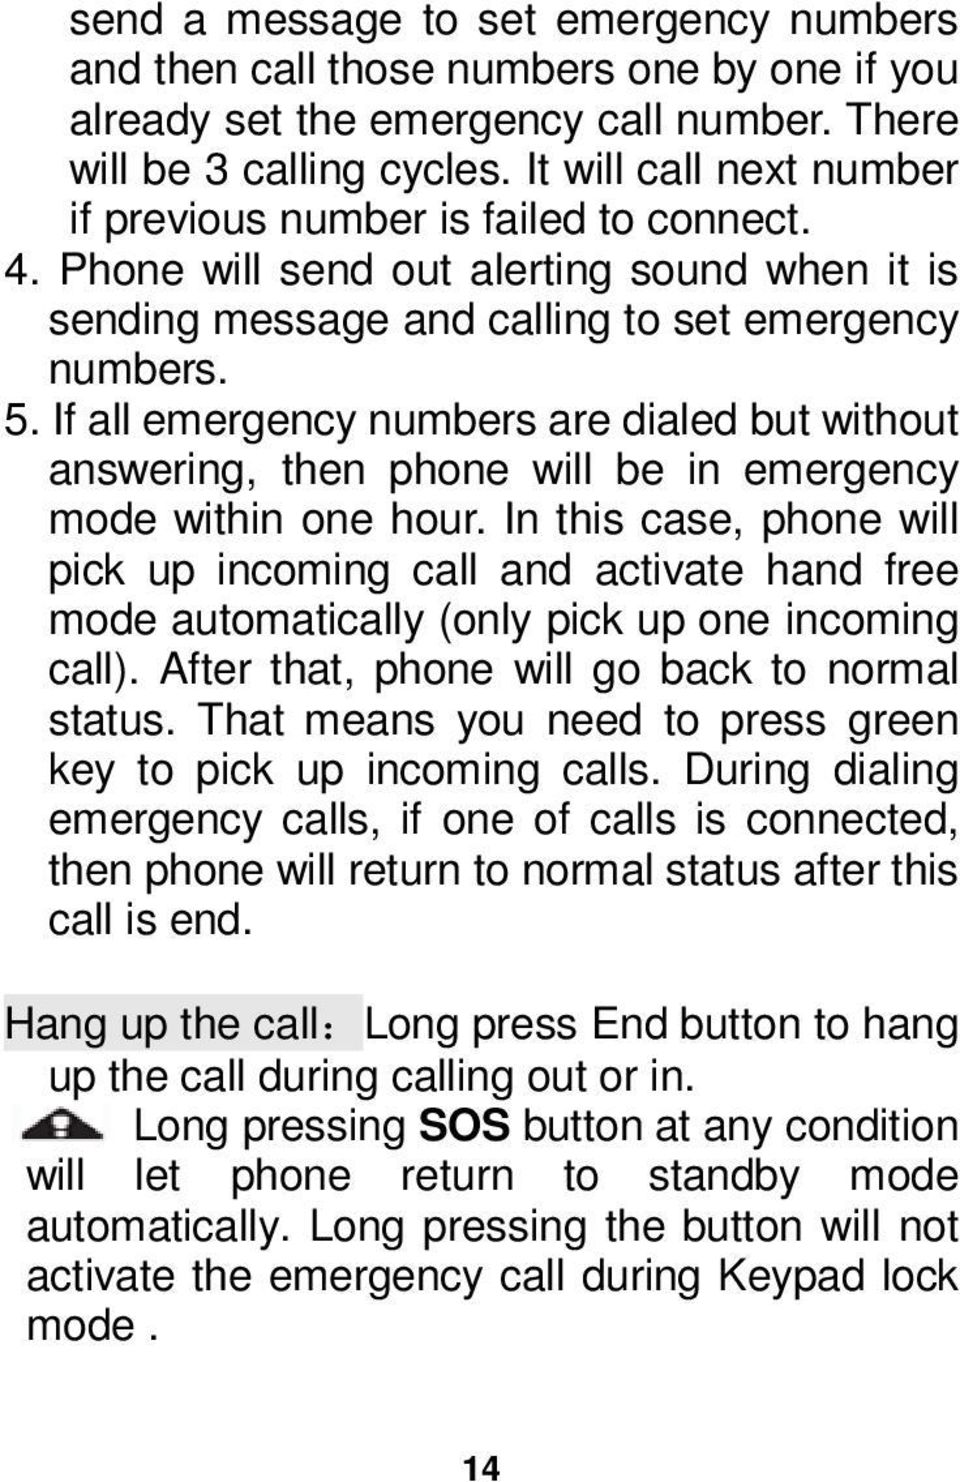 If all emergency numbers are dialed but without answering, then phone will be in emergency mode within one hour.